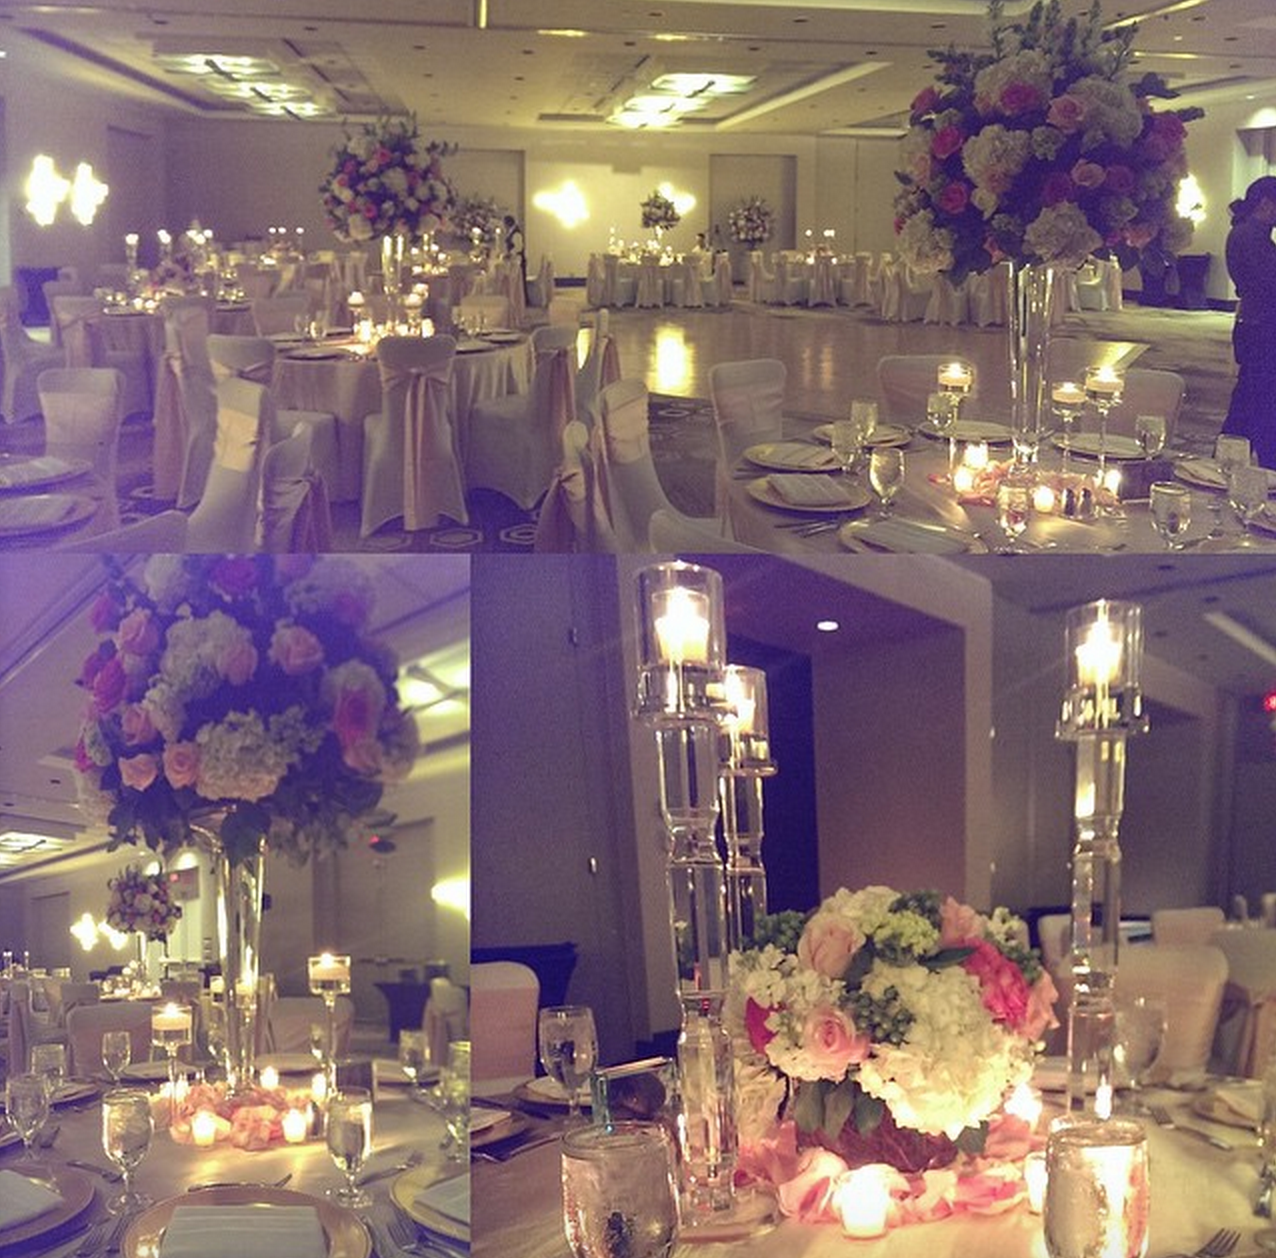 Congrats to Crystal Klonek and Vincent Rivera! (Florist: Weddings & Events by My Creations)